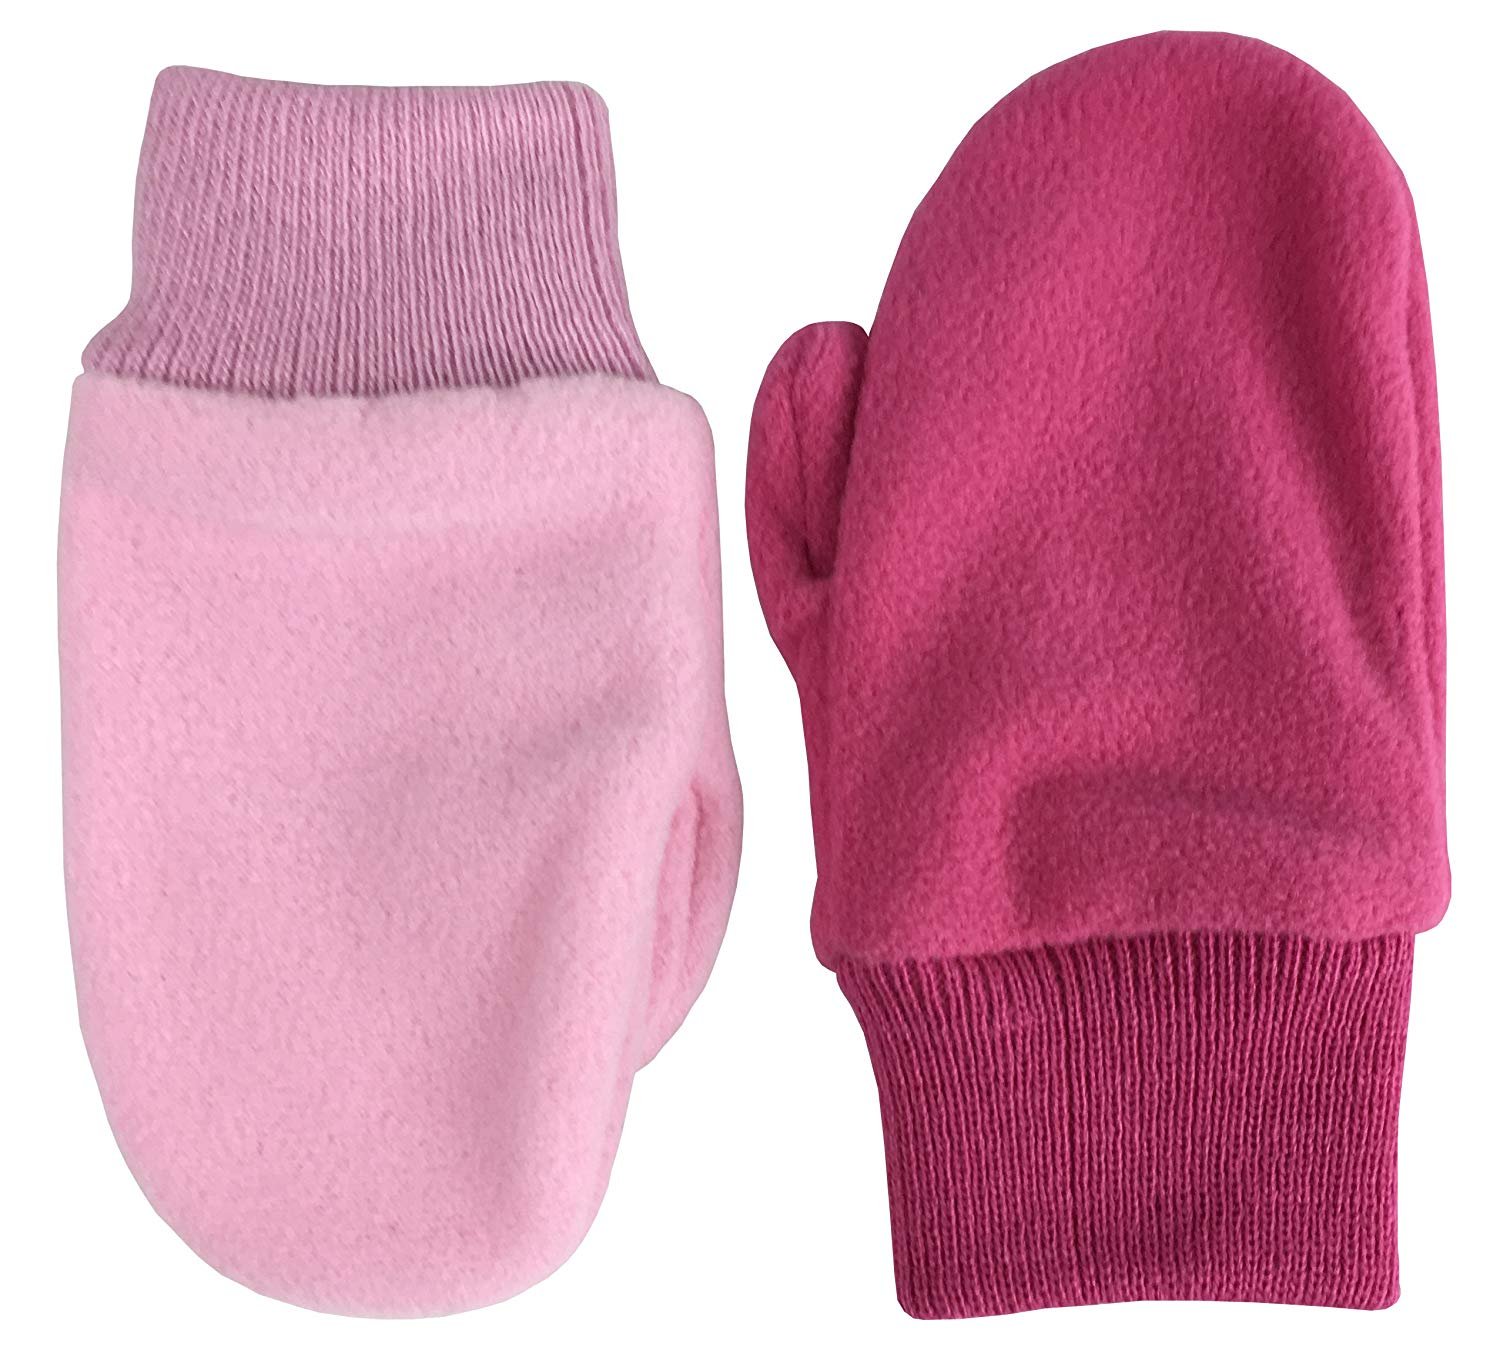 Gloves & Mittens Four Pairs Fleece Very Warm Gloves and Mittens for Infants Ages 0-12 Months Baby Boys